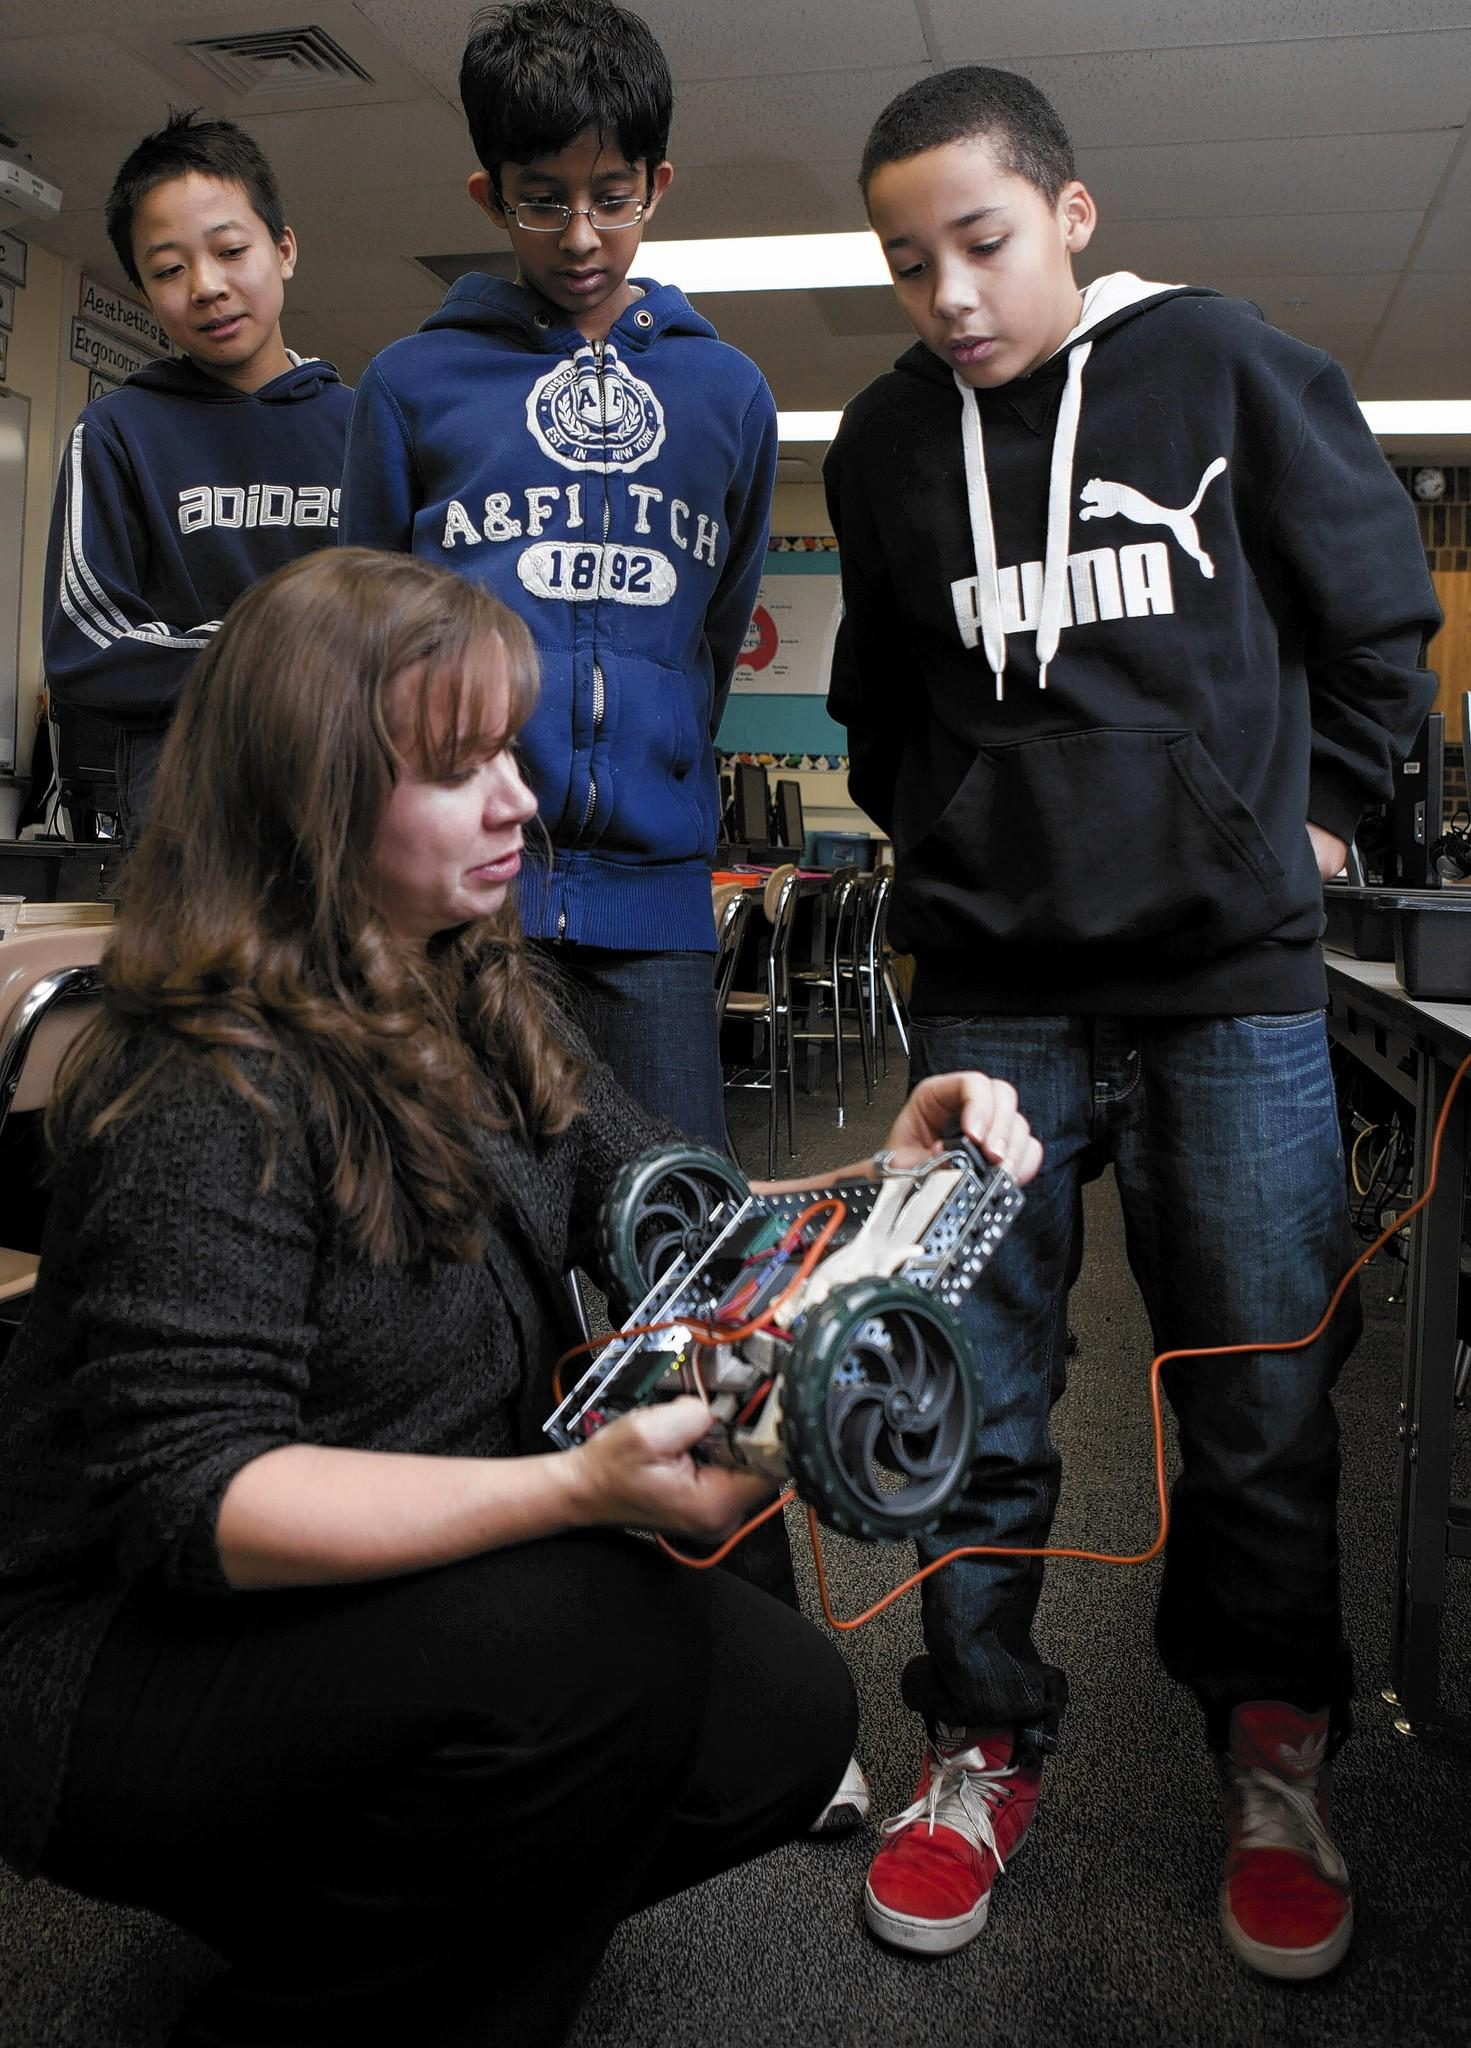 Teacher Michelle Burke works with students Ken Oishi, left, Karthik Myneni and Ian Klocko at Jane Adams Jr. High School in Schaumburg.